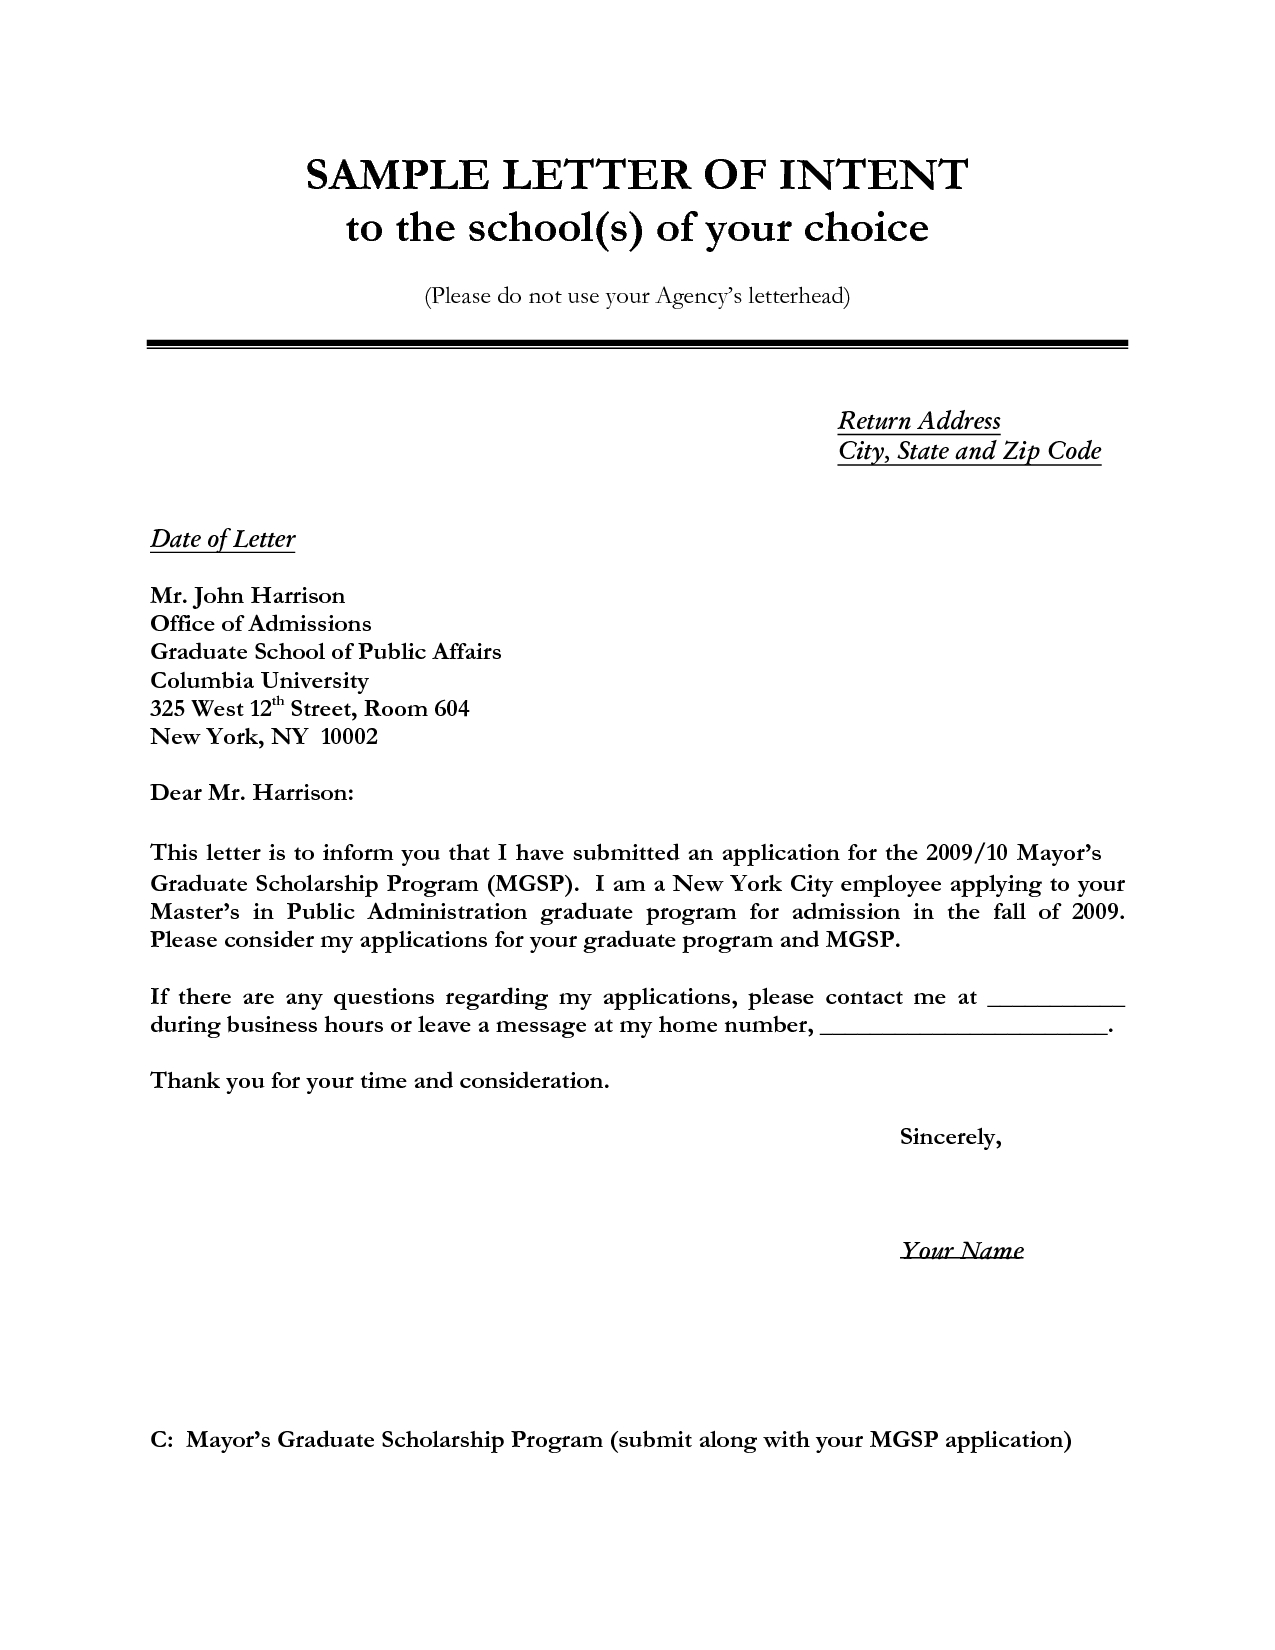 Letter Of Intent to Purchase Real Estate Template - Letter Of Intent Sample